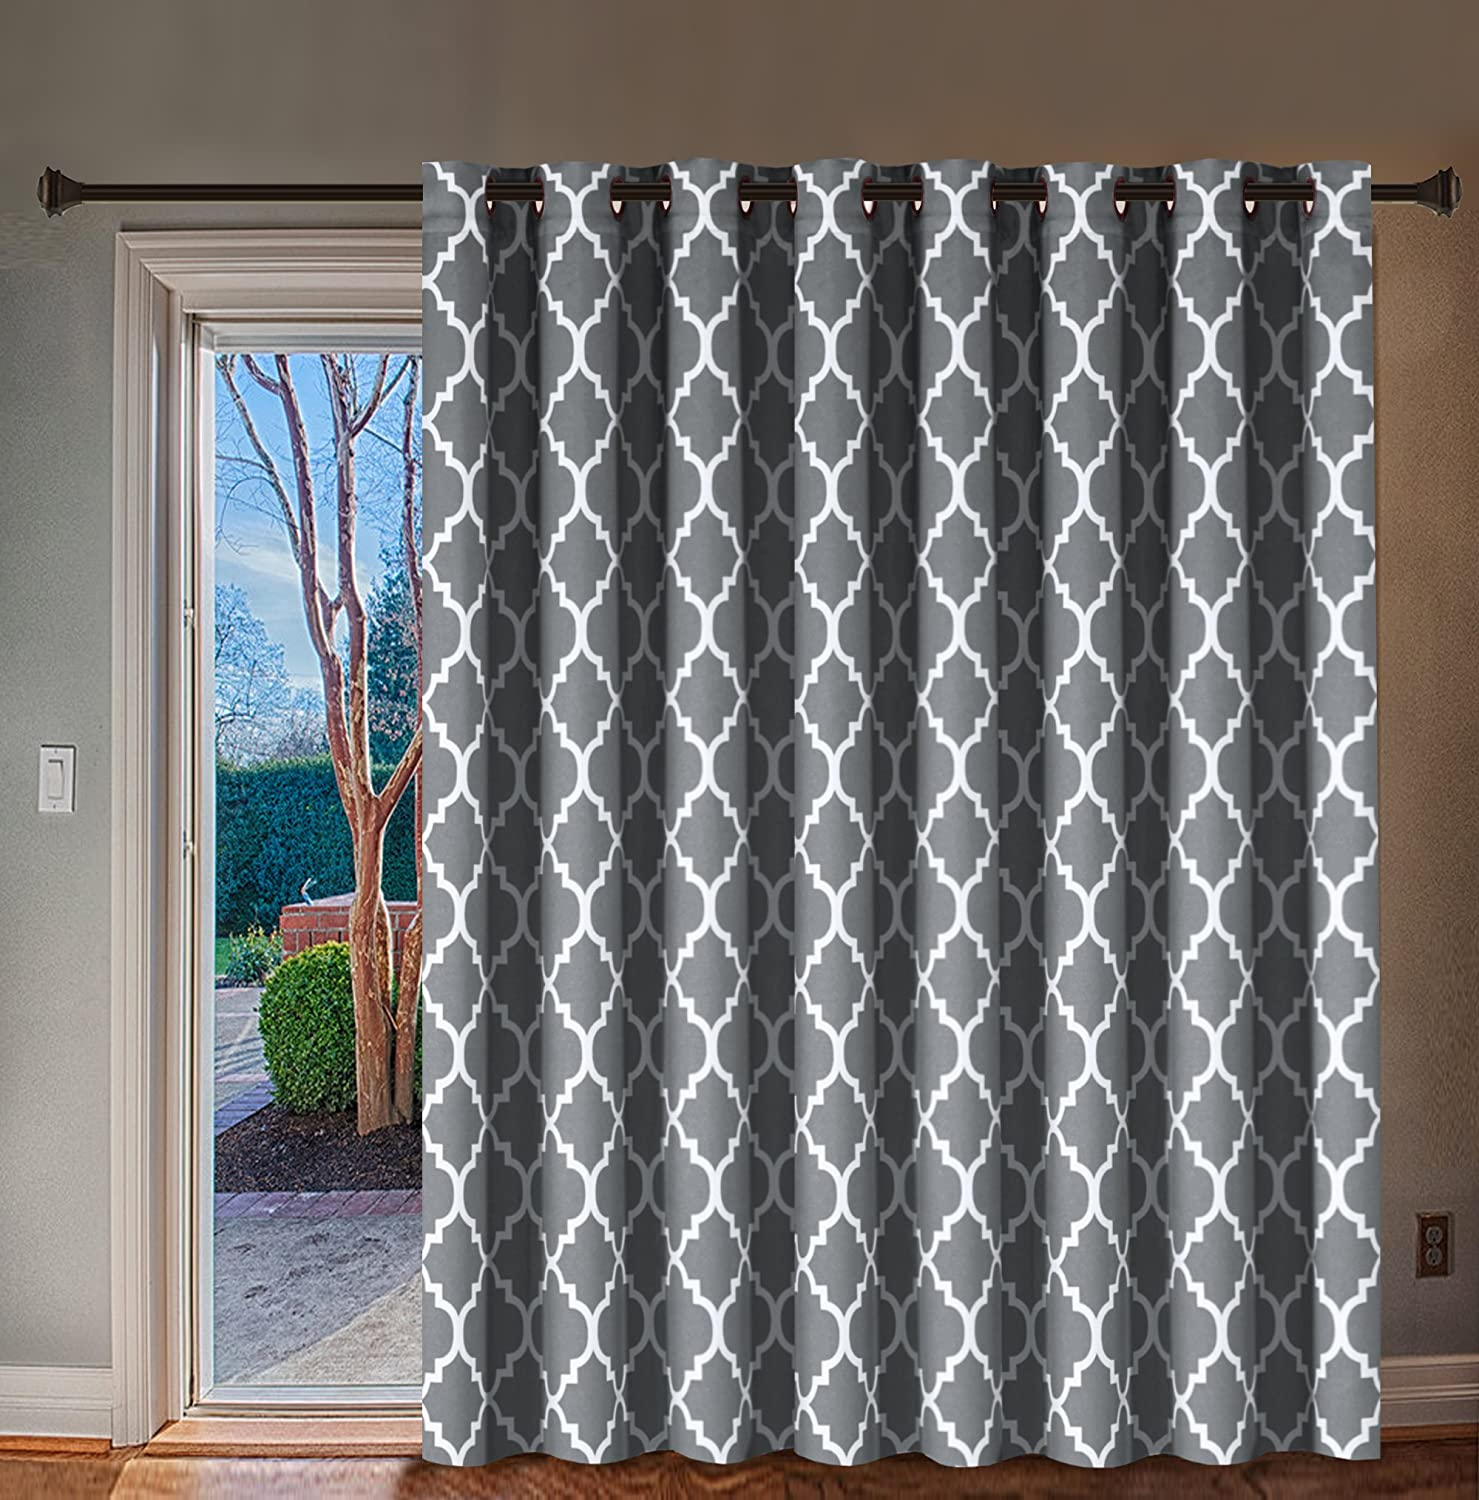 h versailtex extra wide blackout curtain 100x84 inches thermal insulated curtain for sliding glass door grommet top patio door curtain moroccan